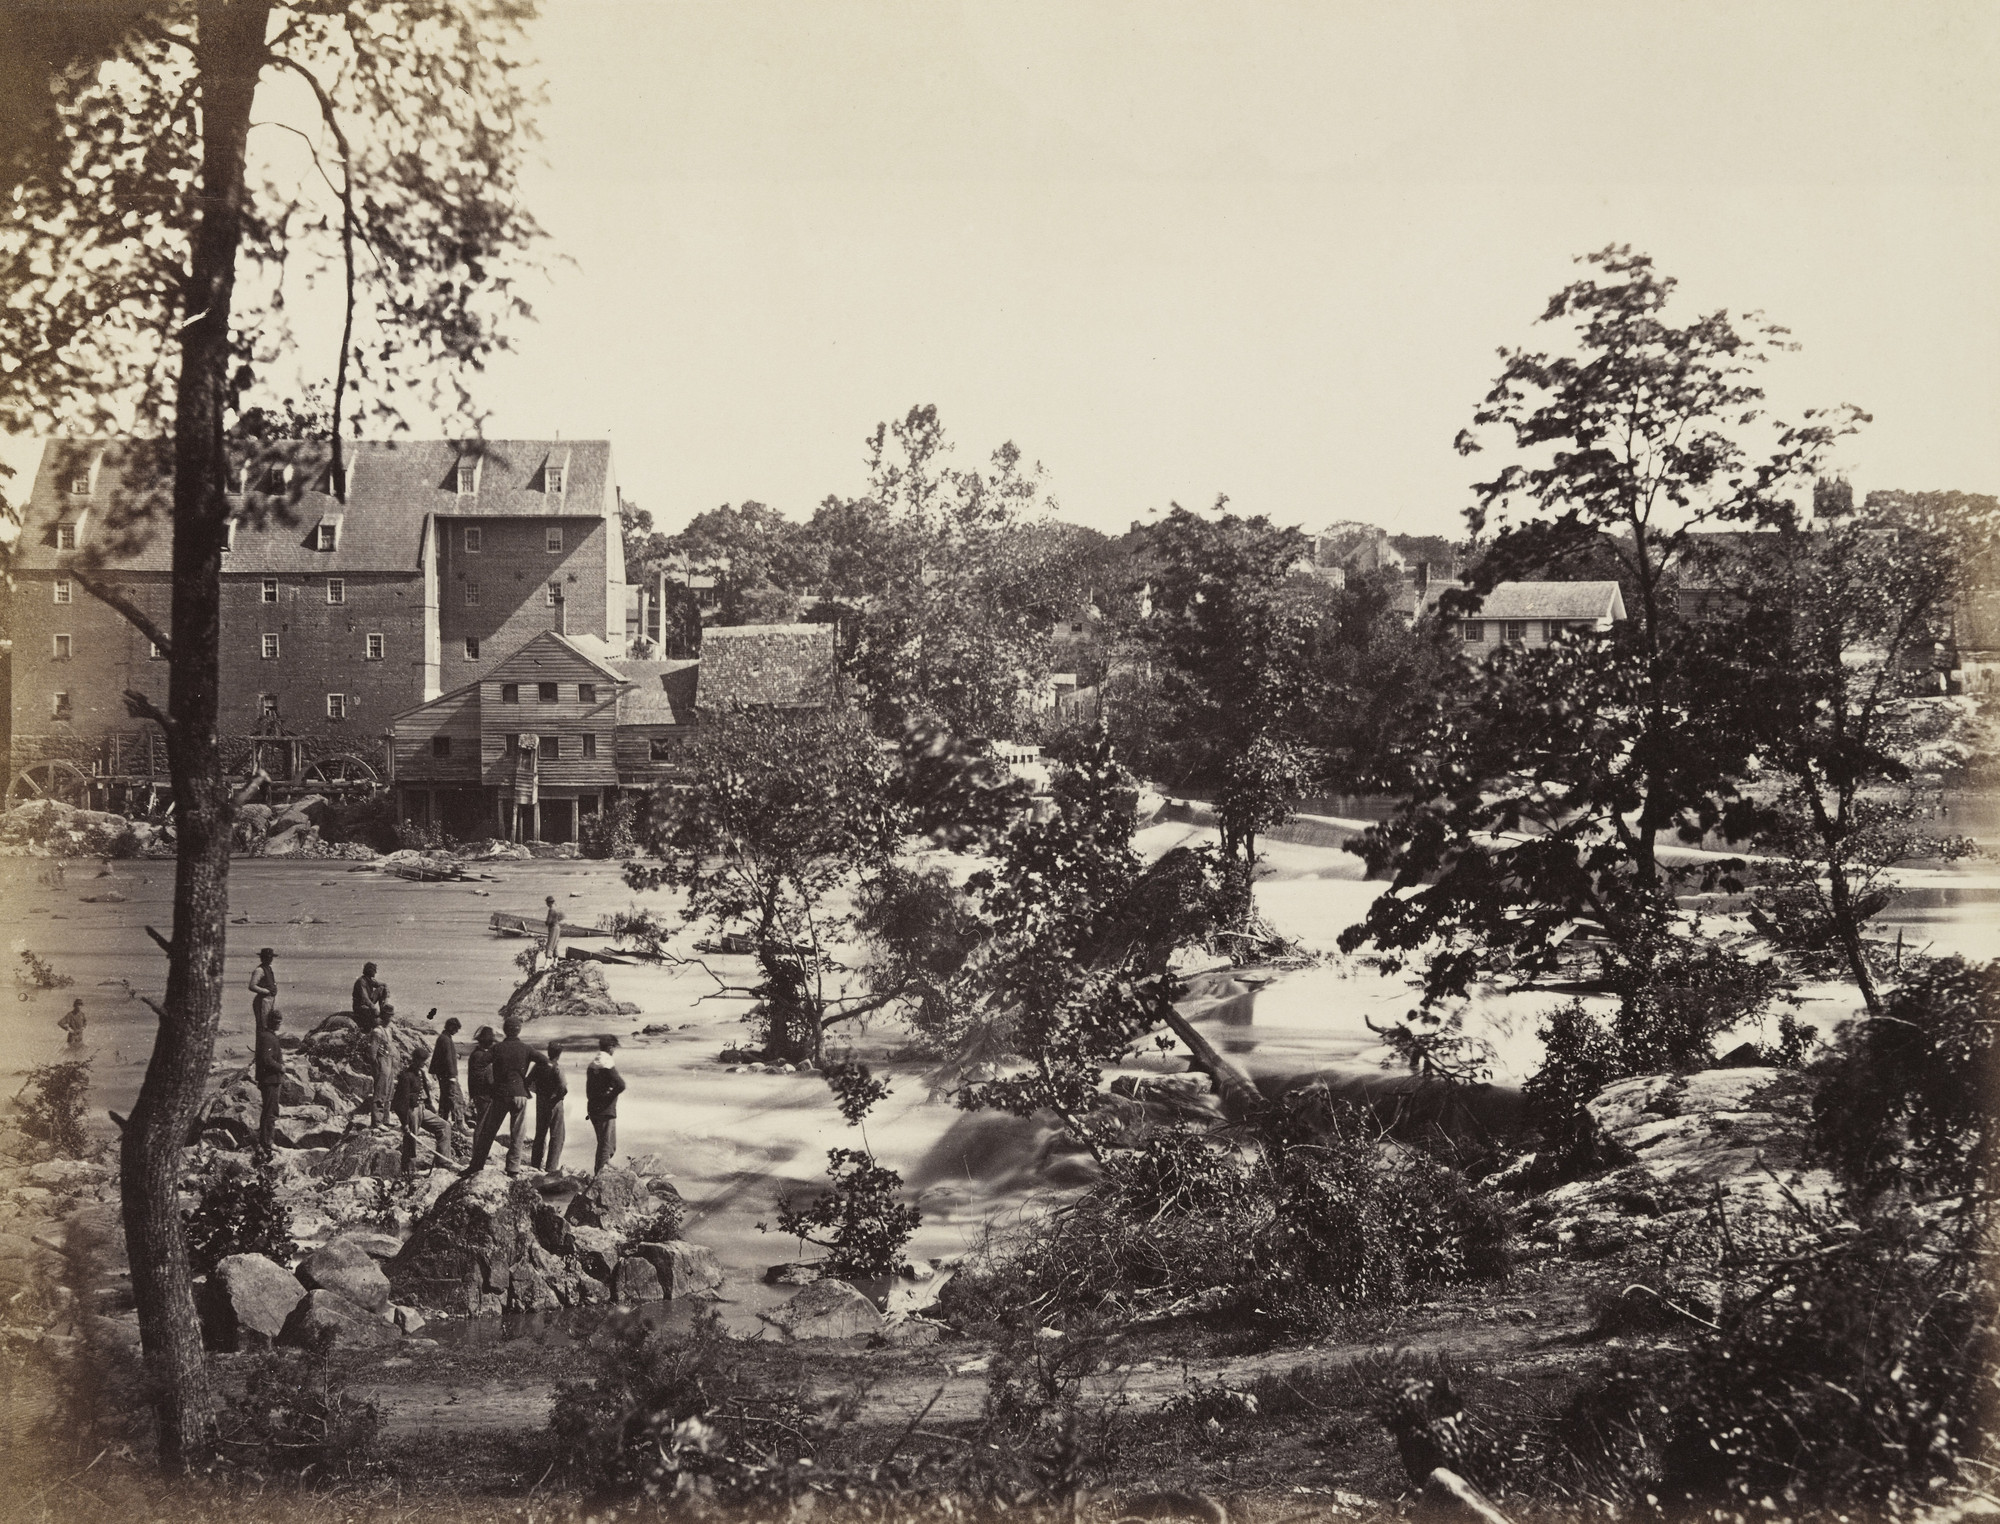 Alexander Gardner, Timothy O'Sullivan. Johnson's Mill, Petersburg, Virginia. May, 1865